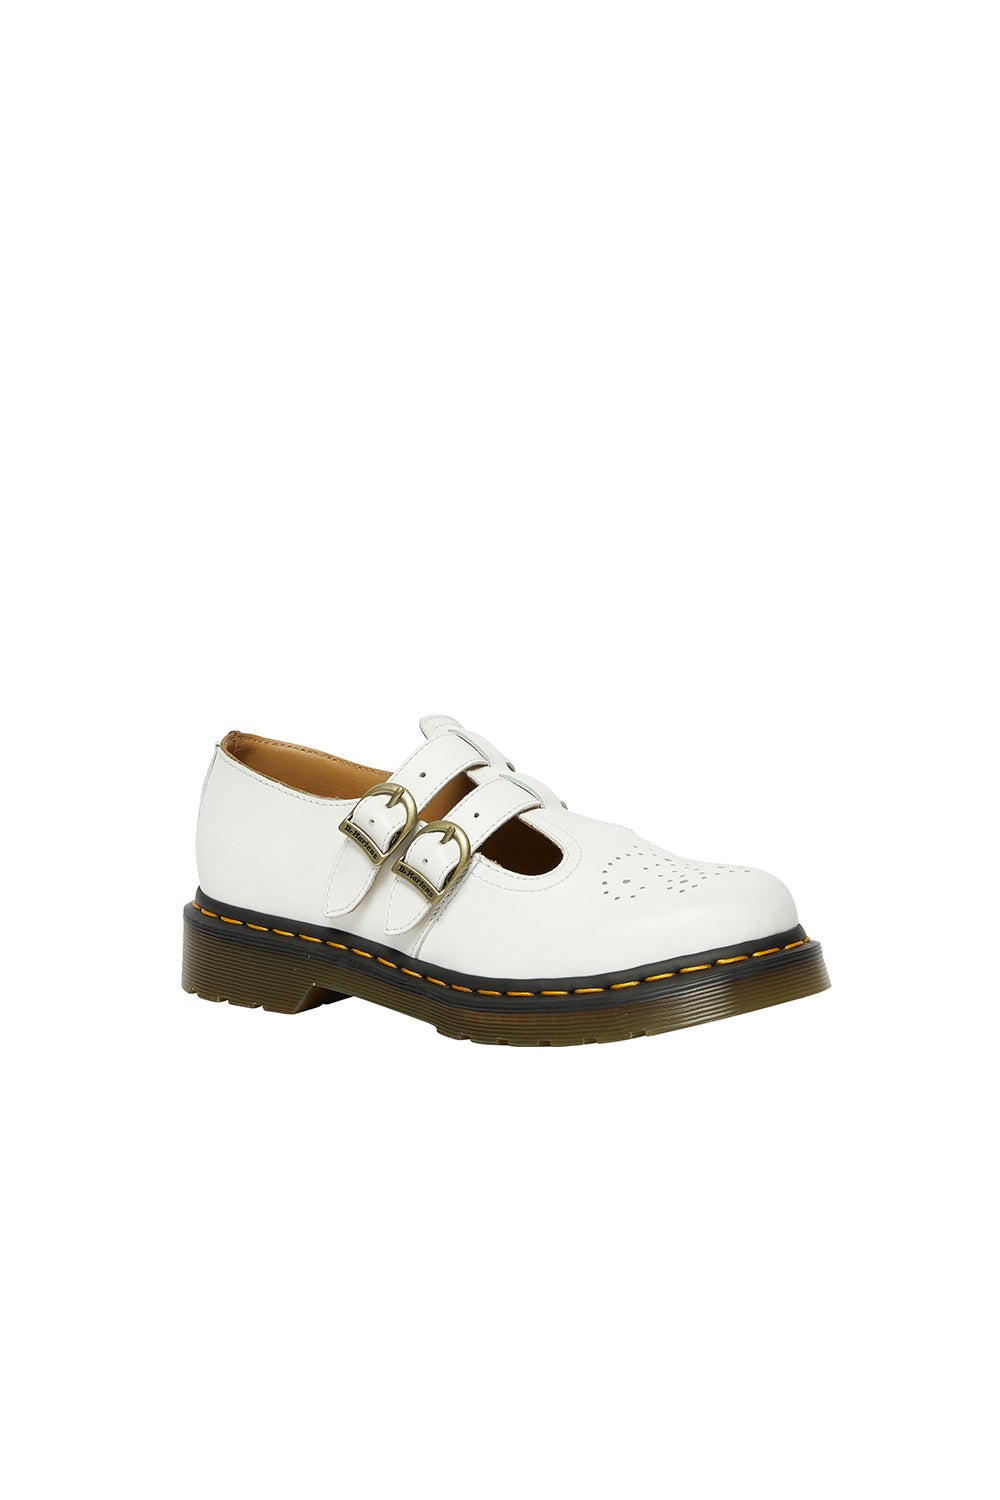 Dr. Martens 8065 2 Strap Mary Jane White